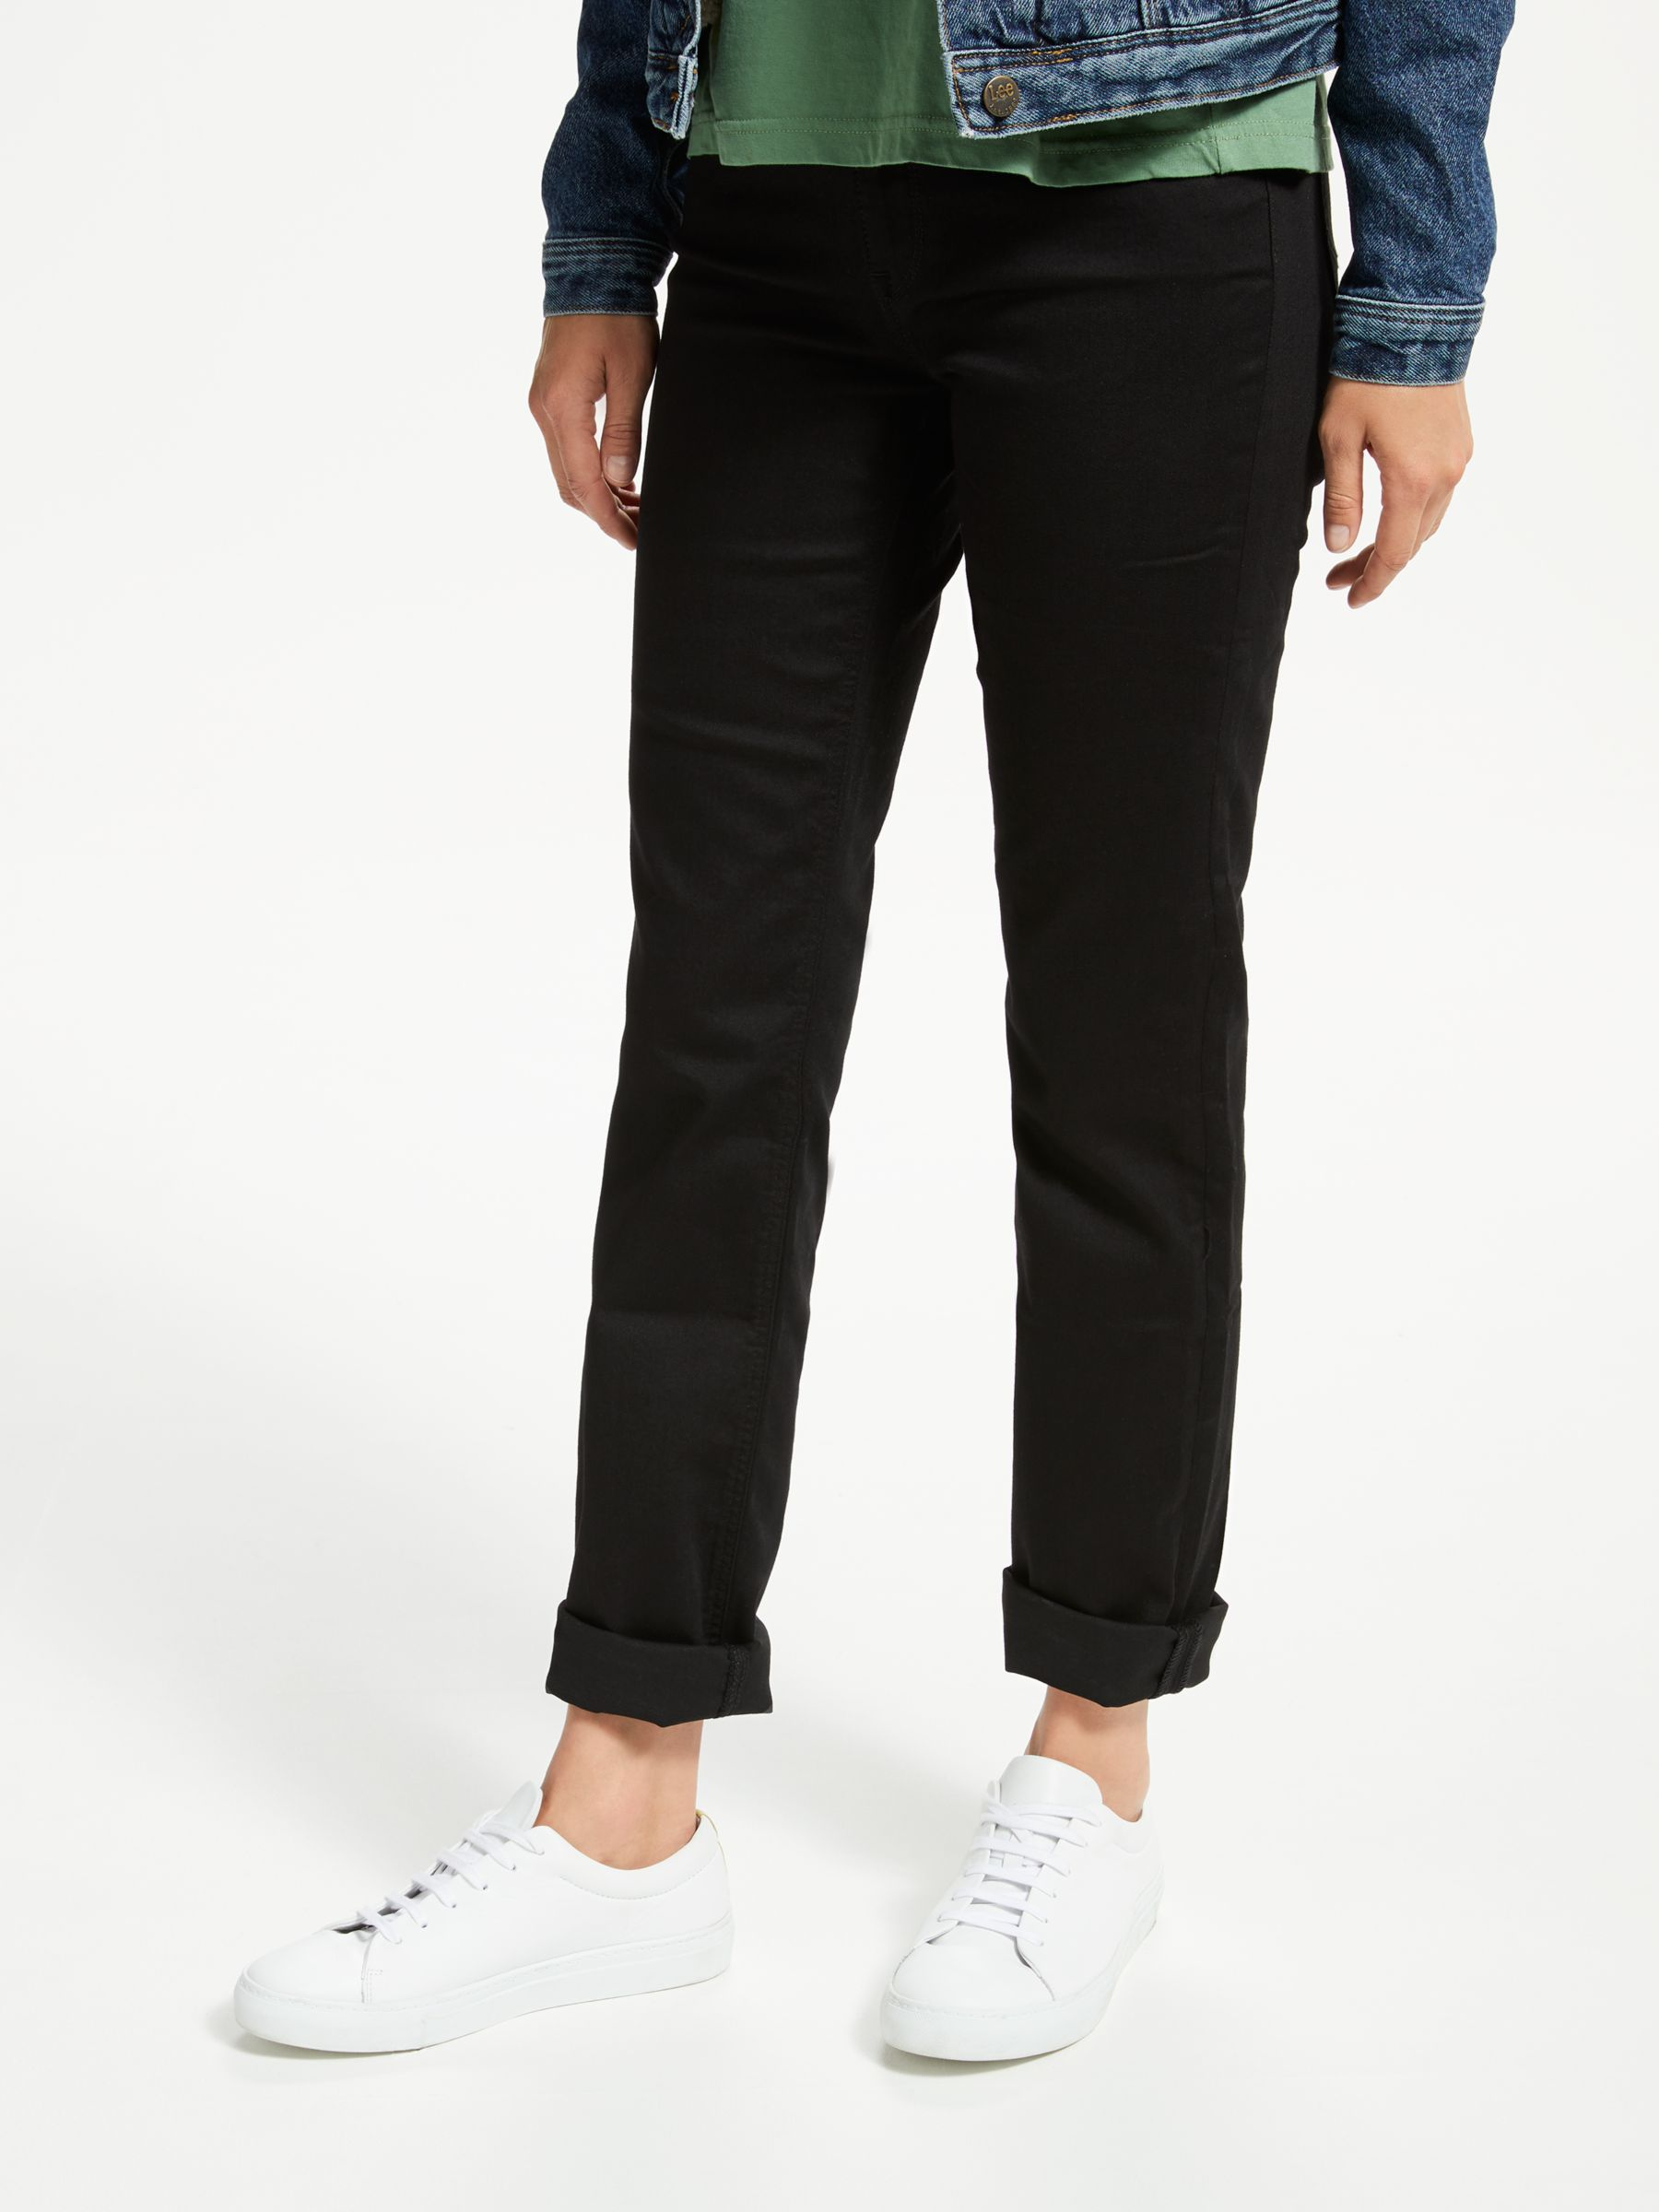 Lee Lee Marion High Rise Straight Leg Jeans, Black Rinse